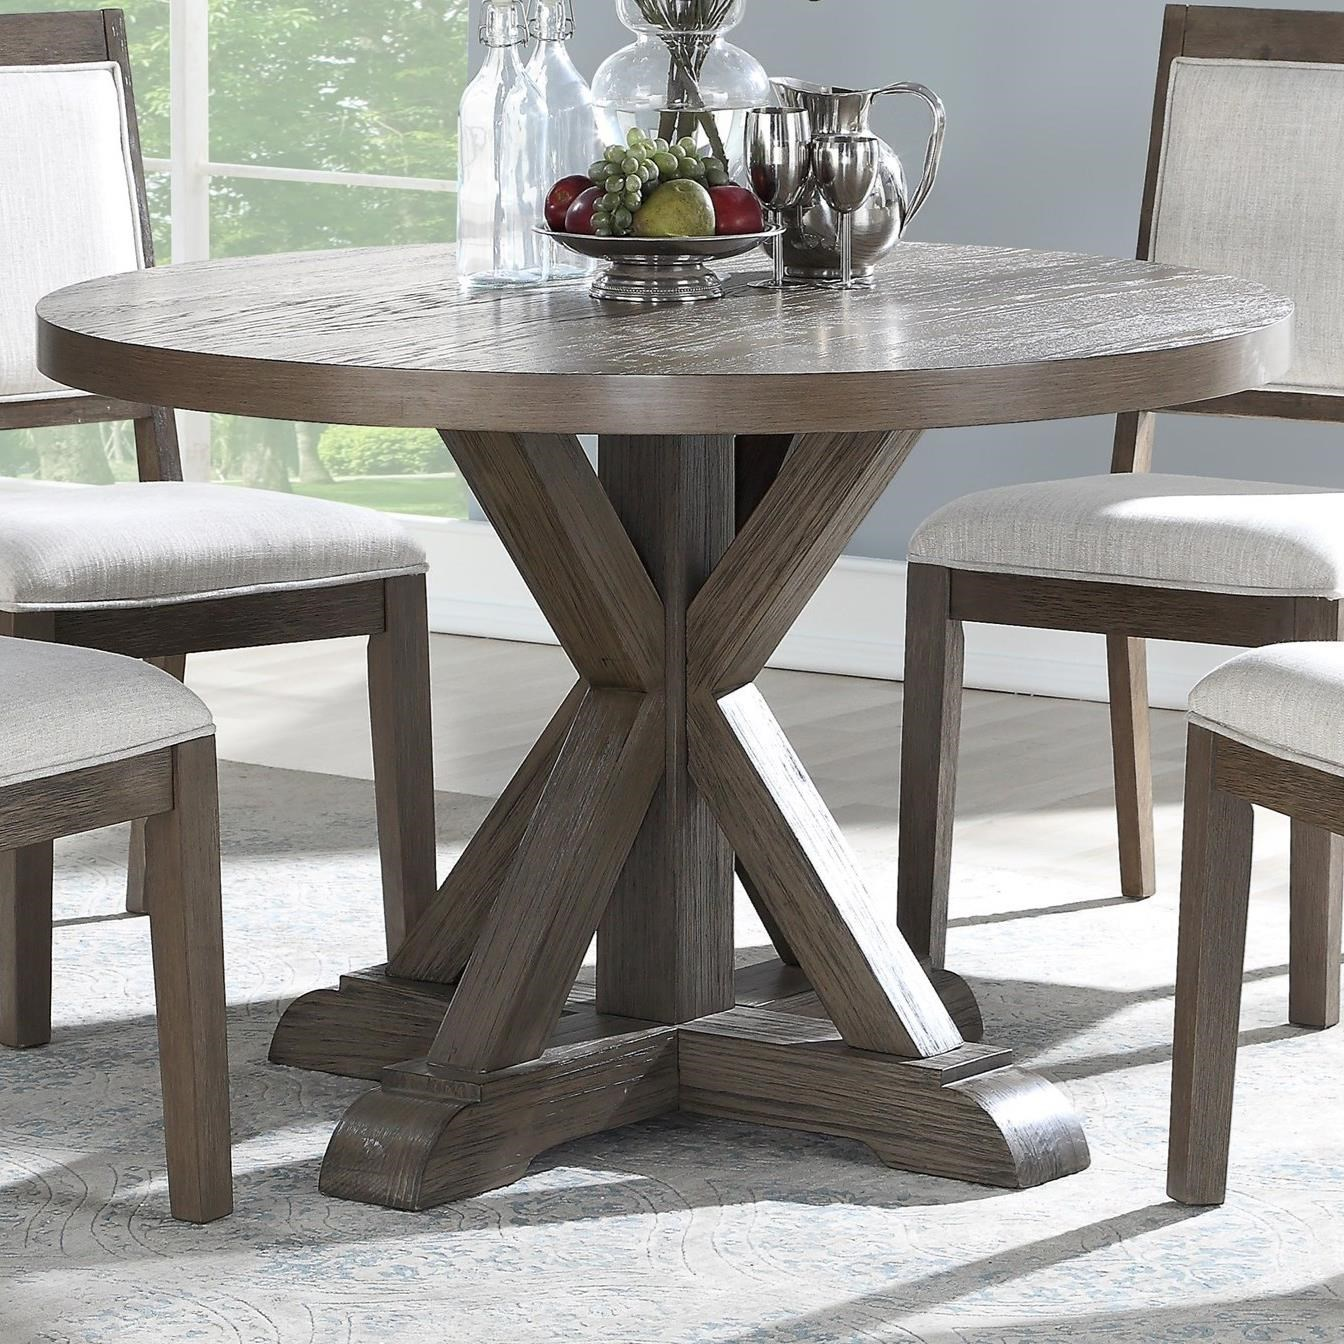 48 round dining table rustic steve silver mollyround dining table molly rustic 48